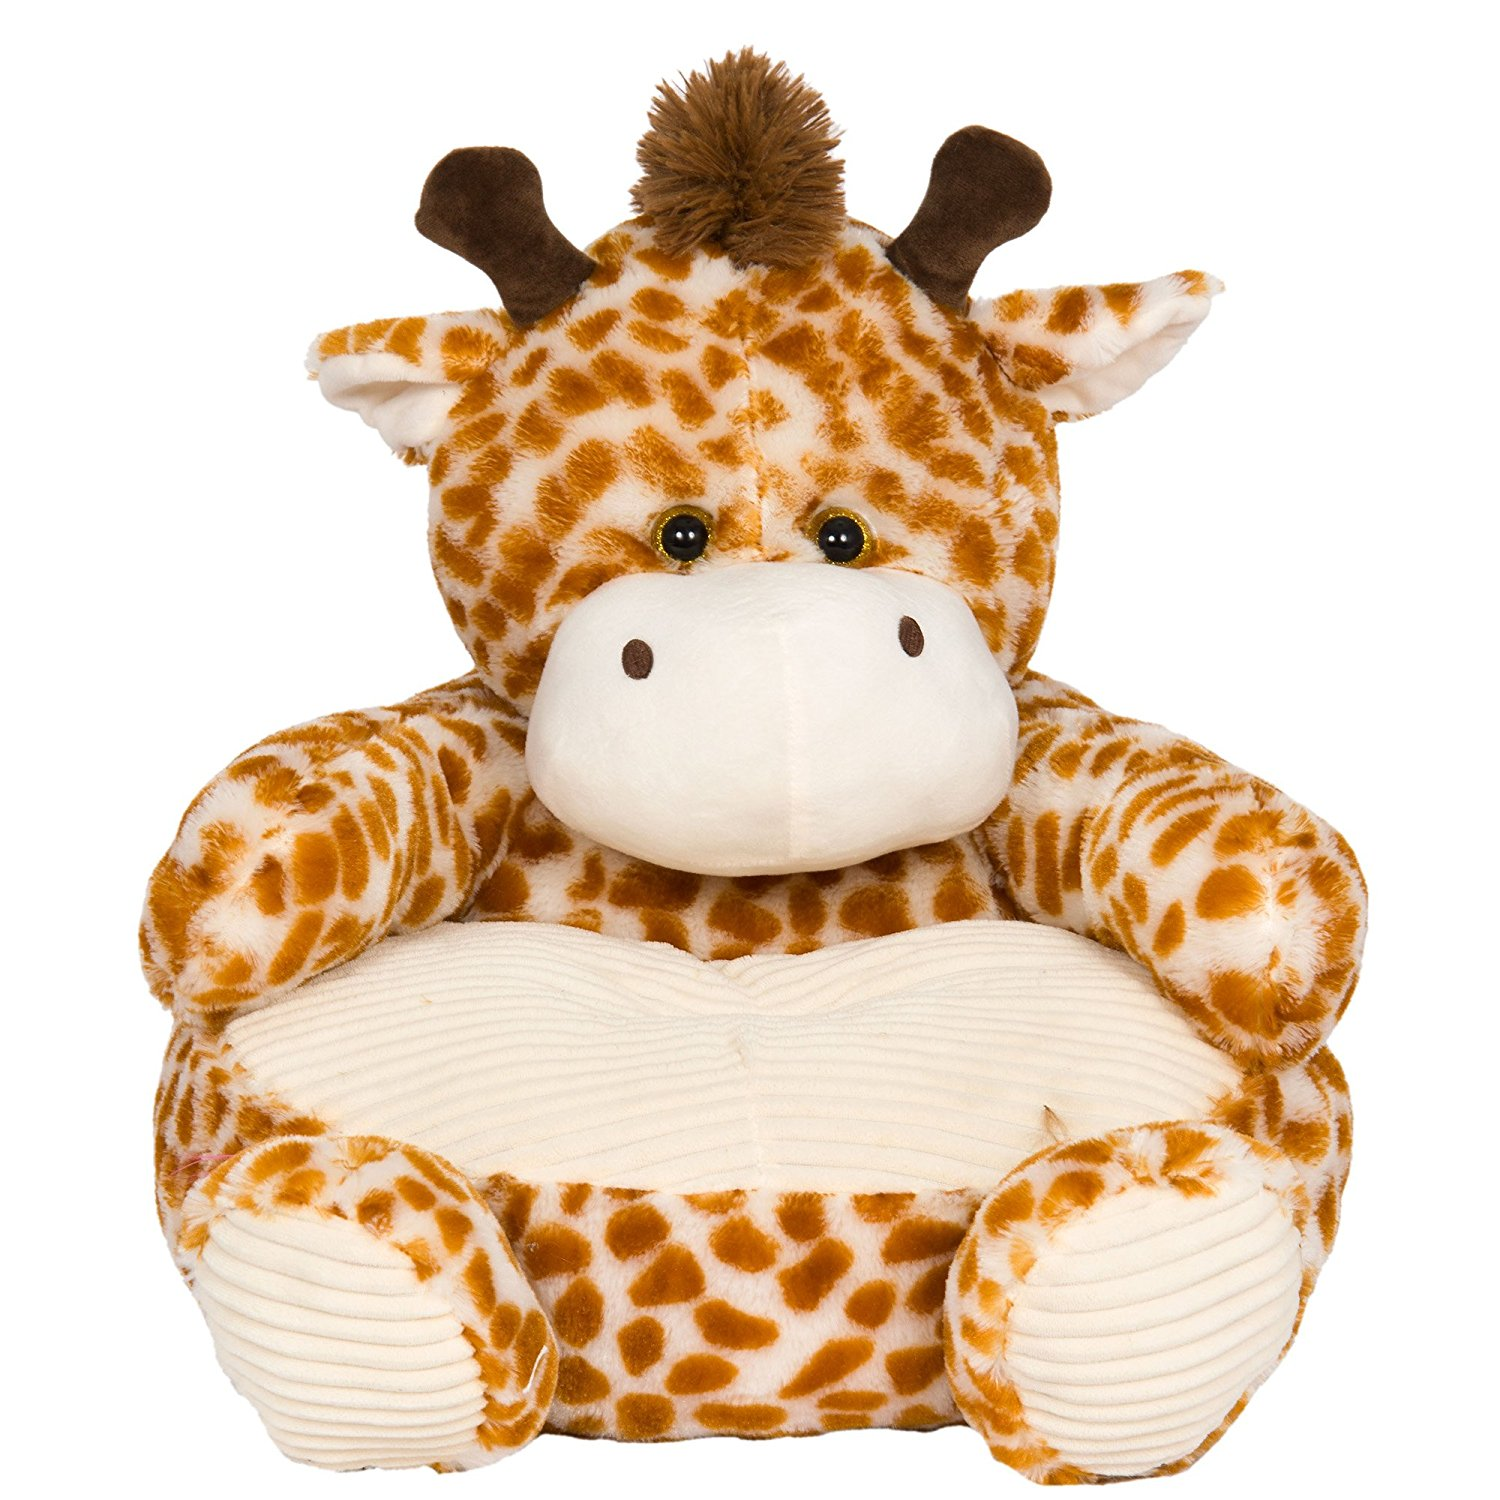 Children's Plush Animal Chair